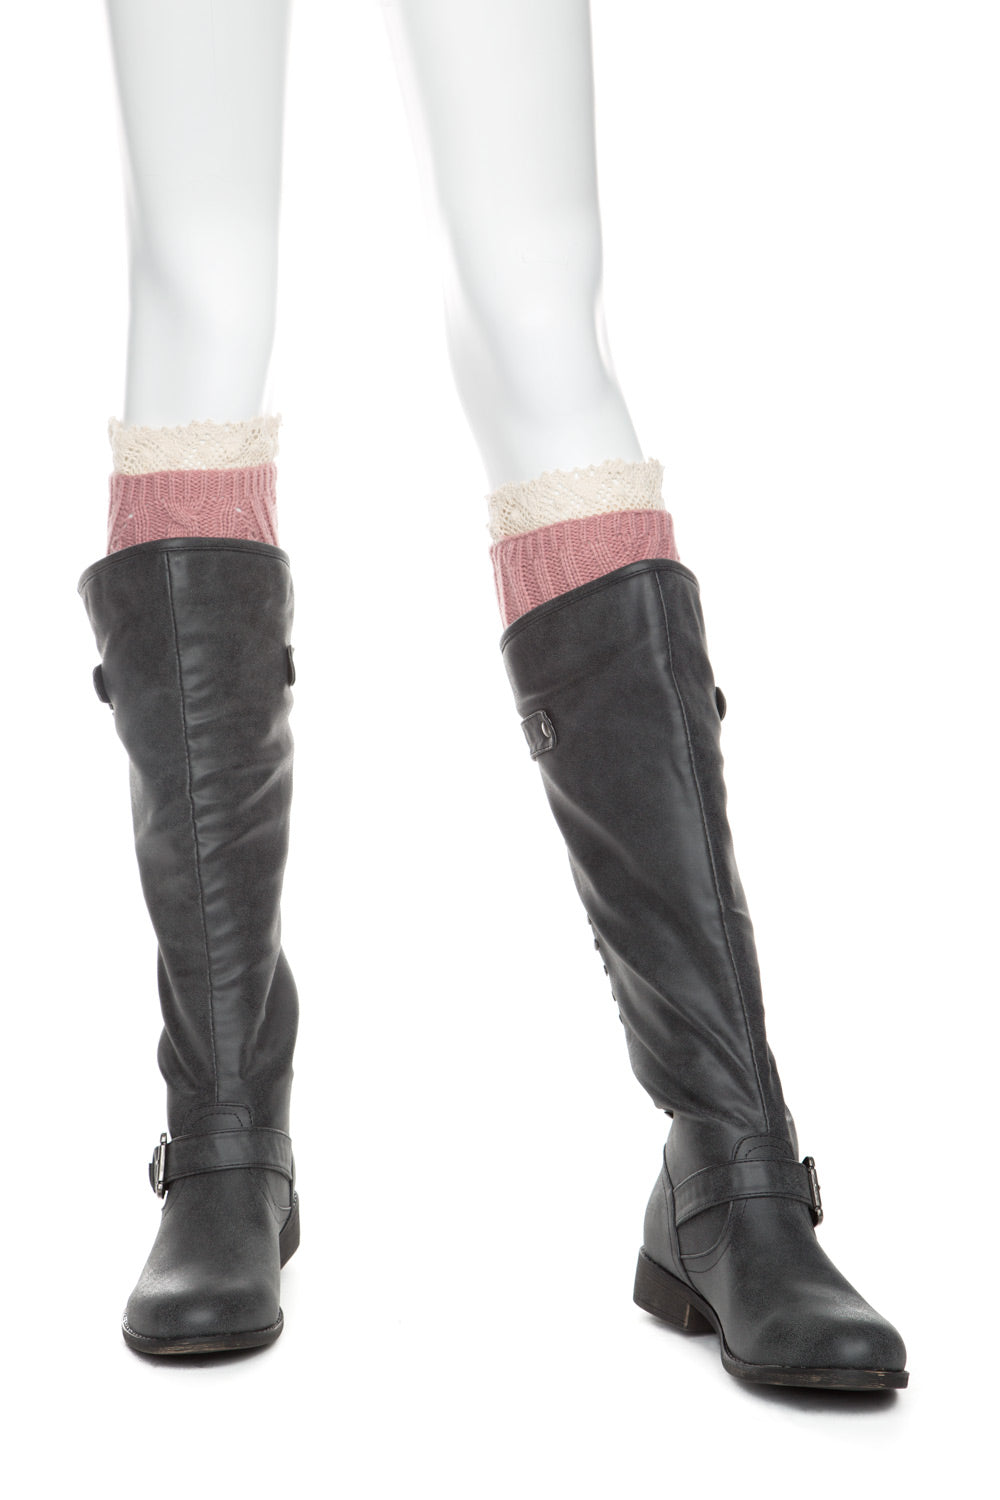 Type 2 Lovely Lace Boot Toppers in Rose